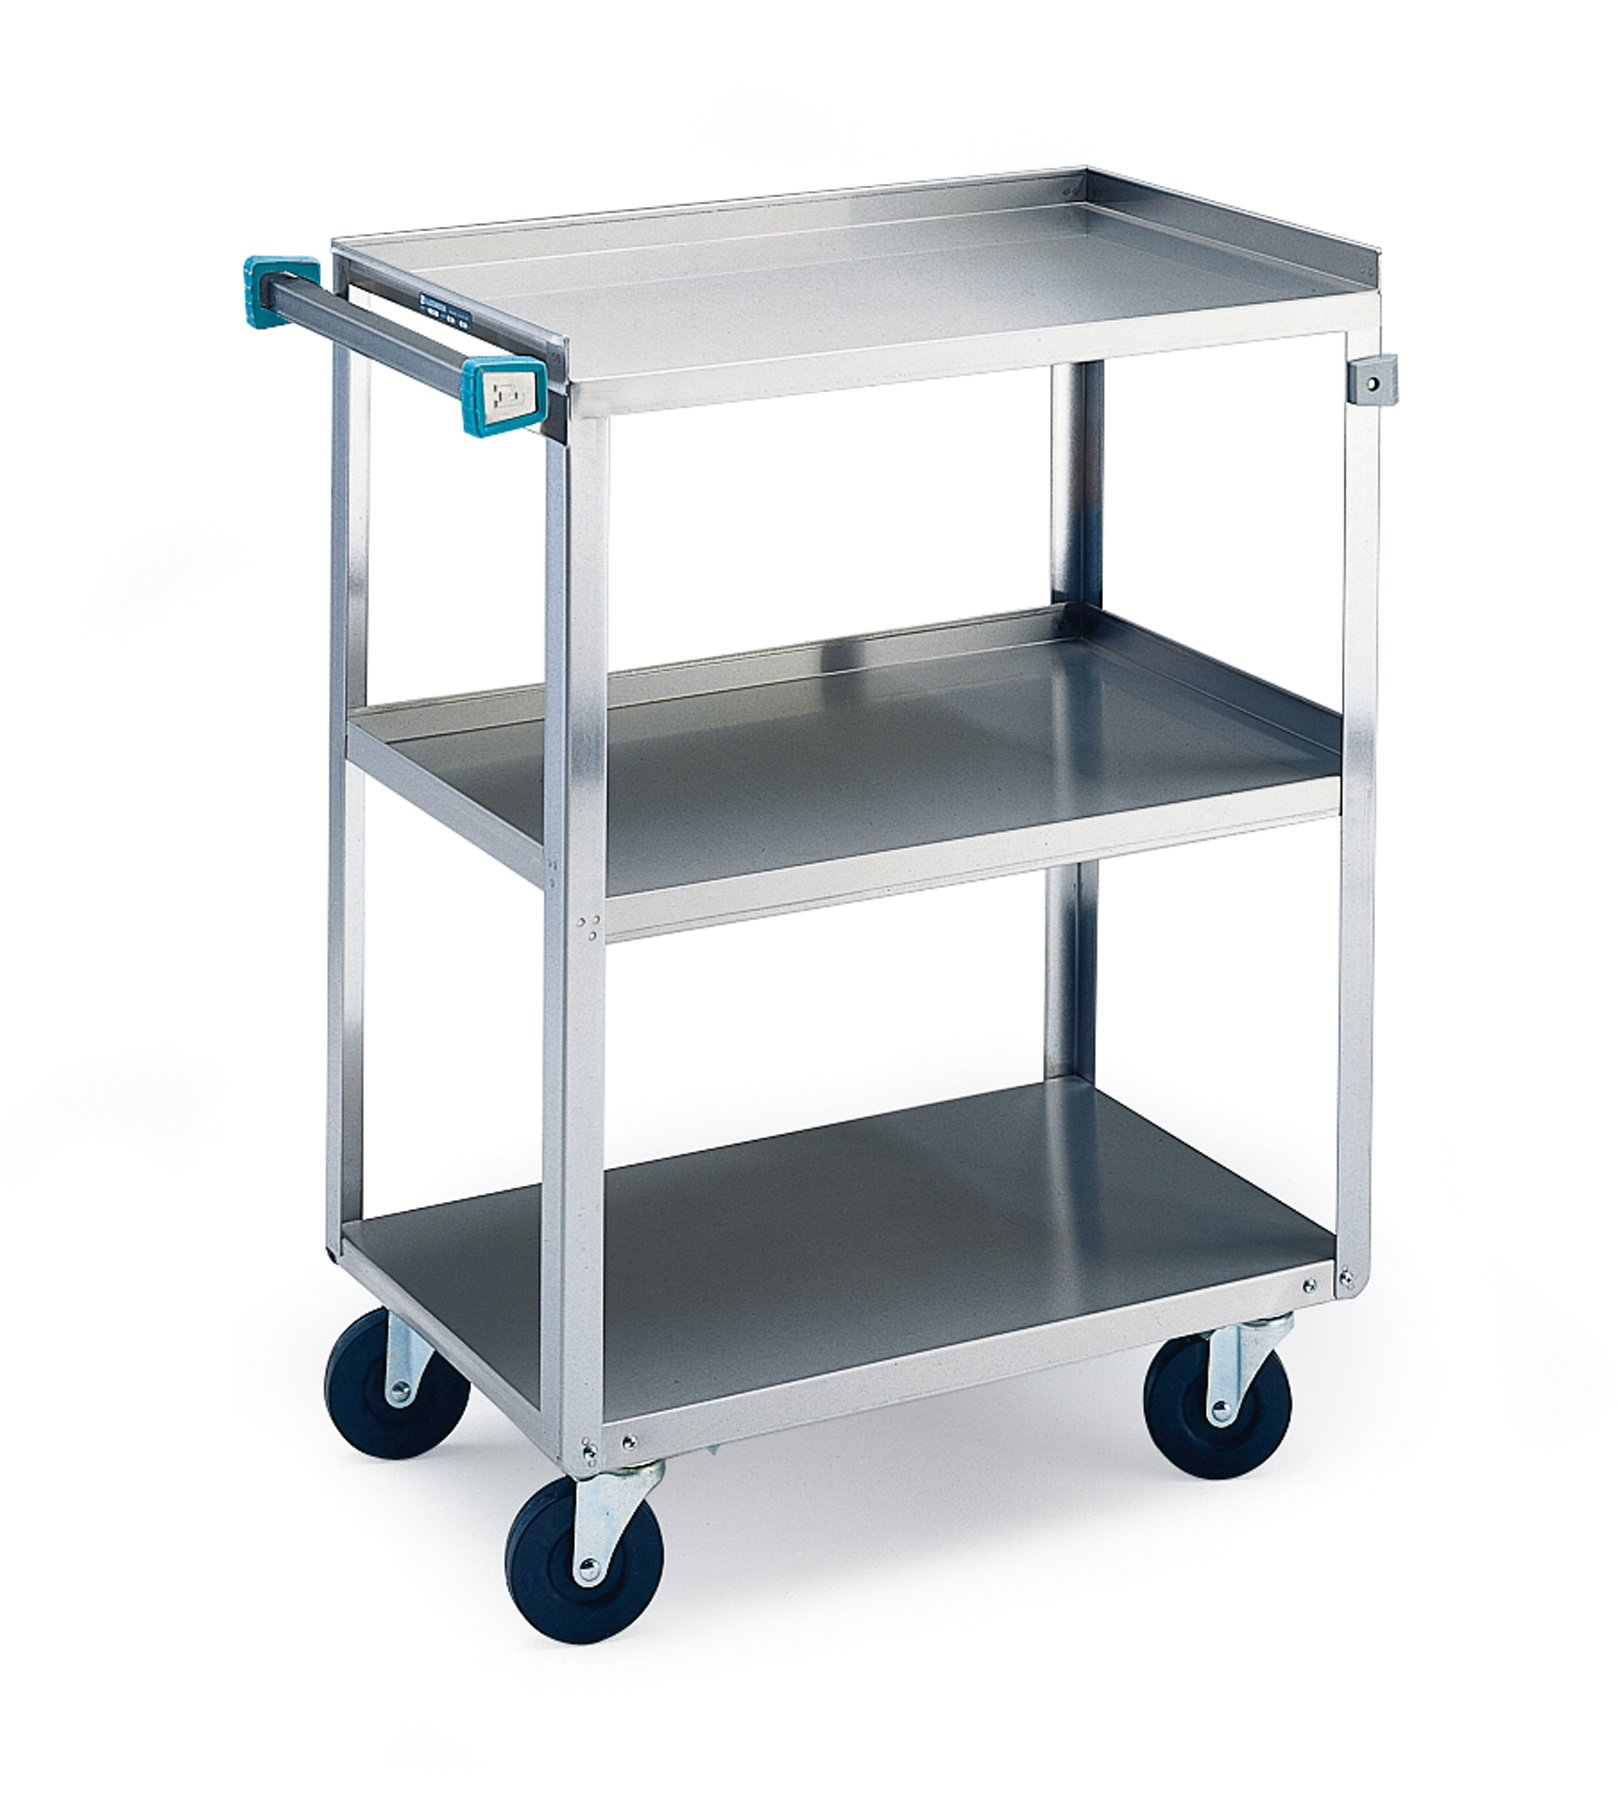 Lakeside 311 Utility Cart, 3 Shelves, Stainless Steel, 300 lb Capacity, 16-1/4'' x 27-1/2'' x 32-1/8'' by Lakeside Manufacturing